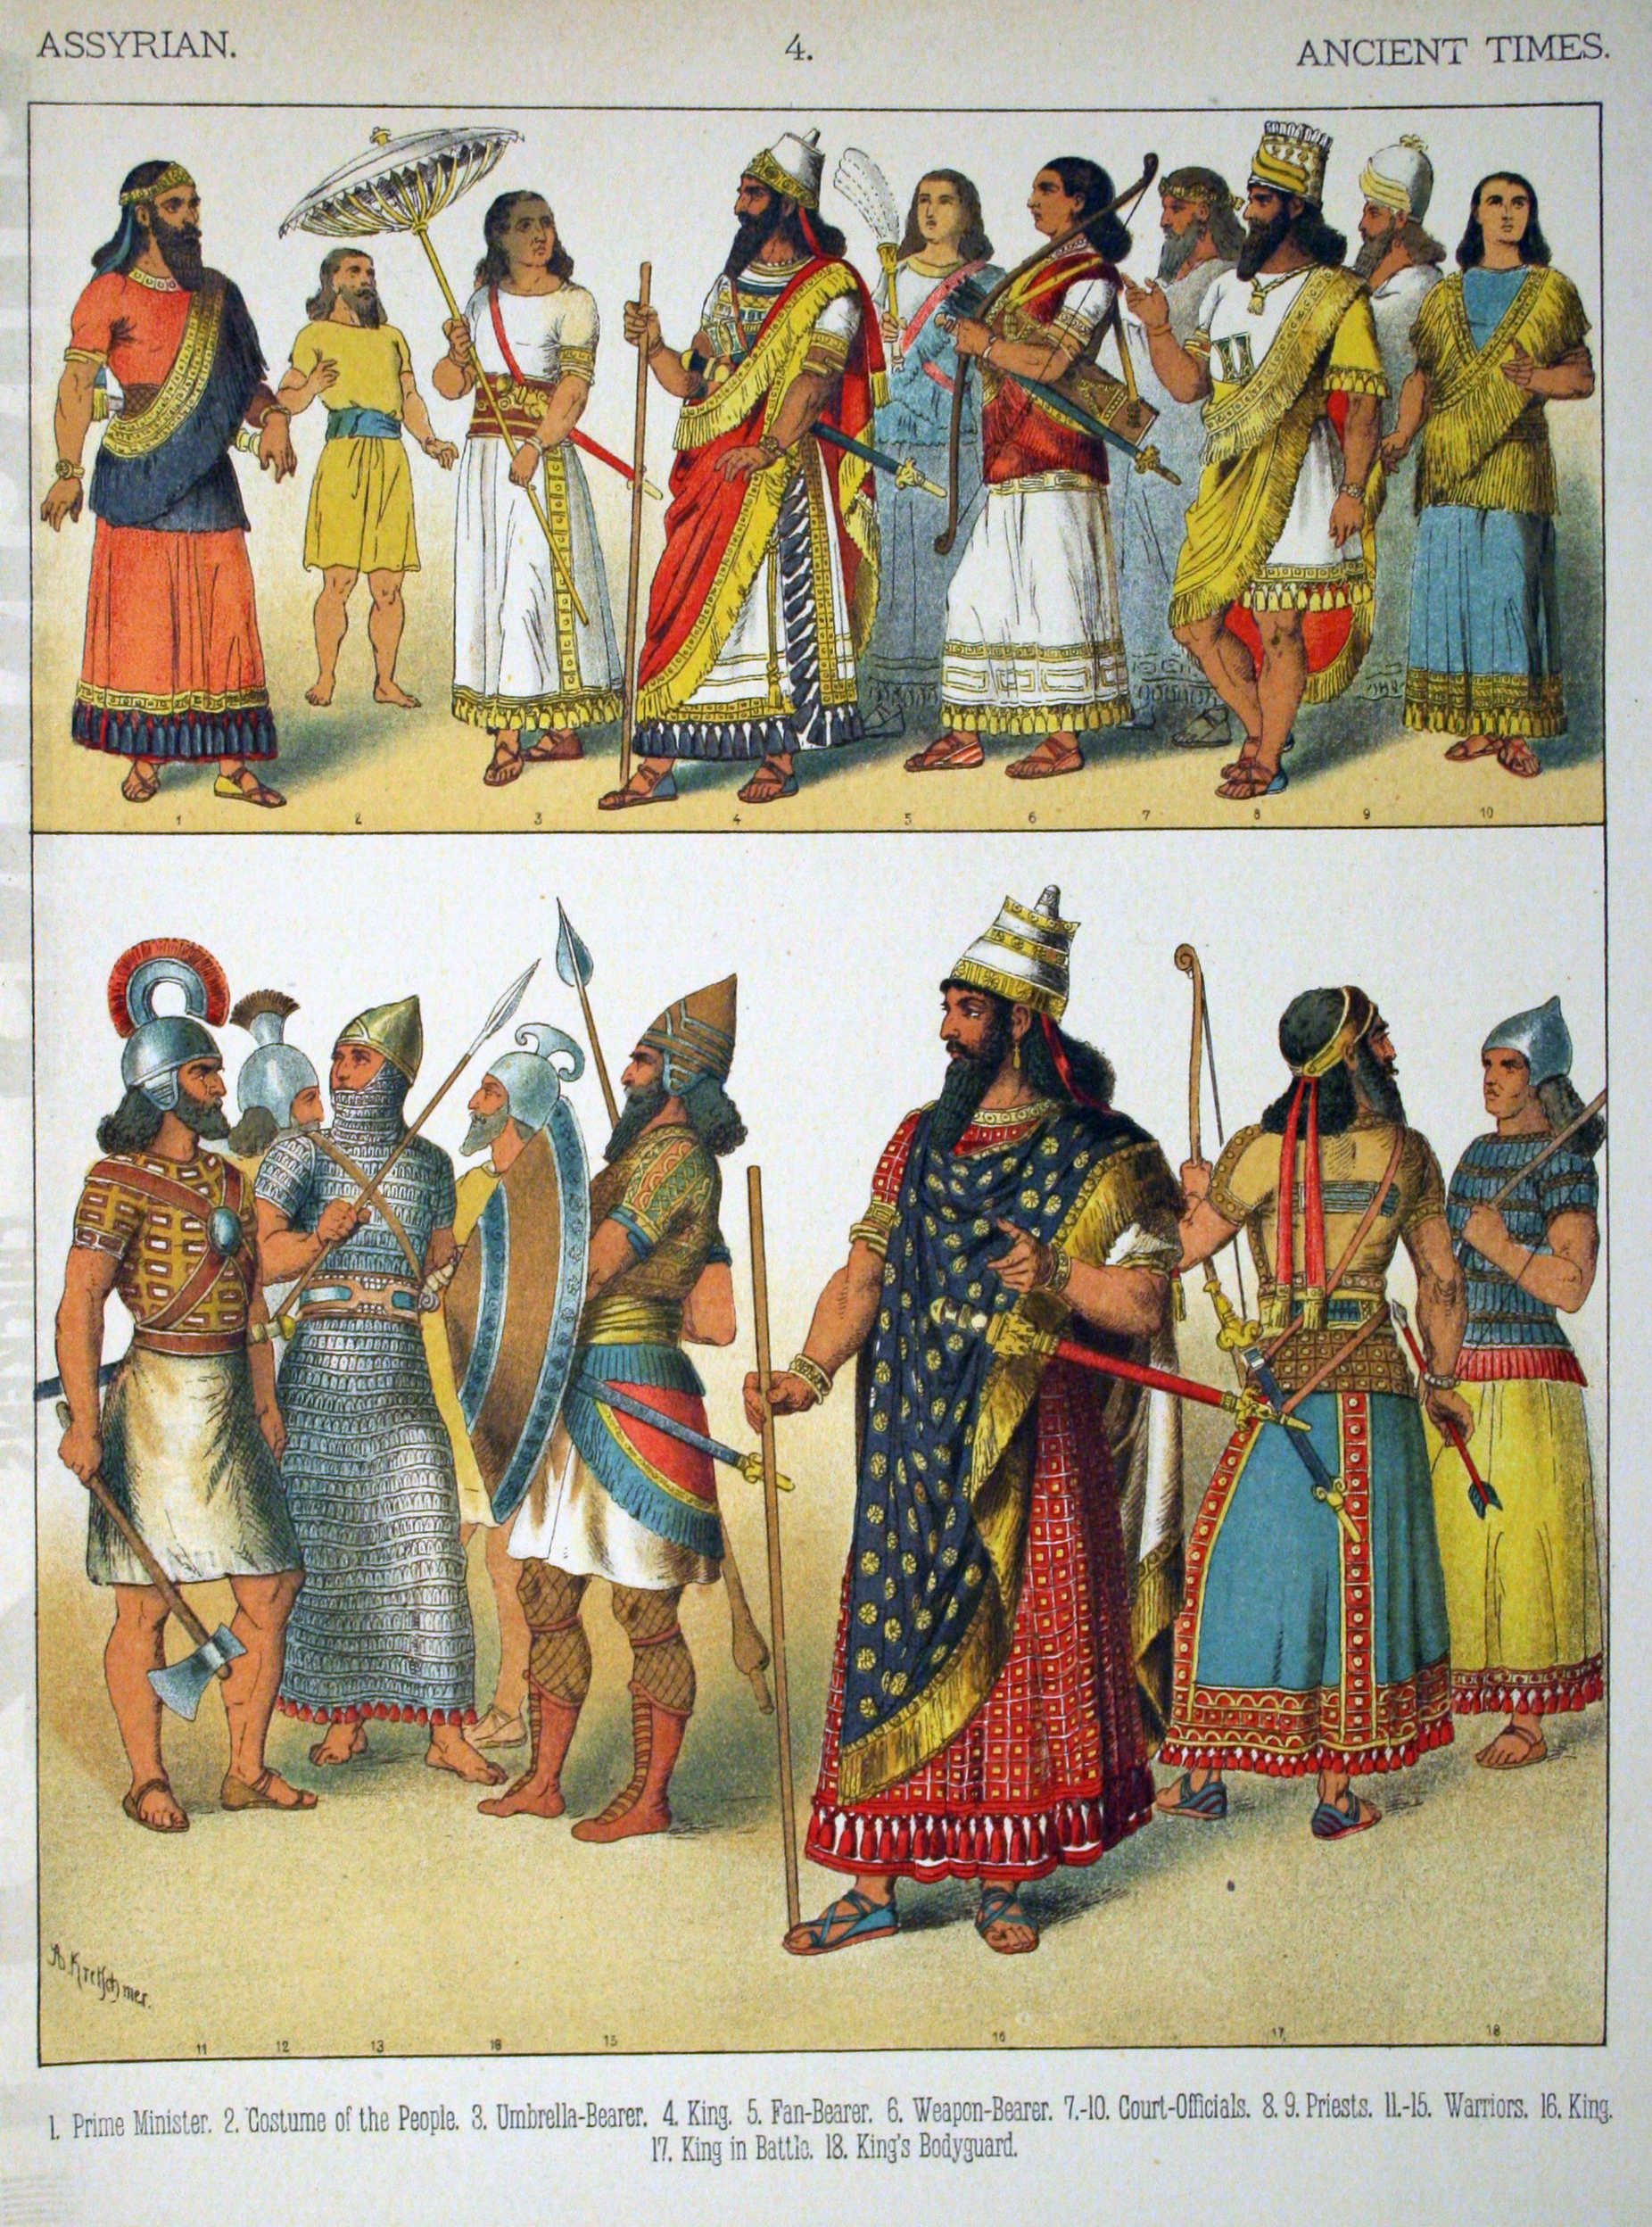 https://i0.wp.com/upload.wikimedia.org/wikipedia/commons/c/c6/Ancient_Times%2C_Assyrian._-_004_-_Costumes_of_All_Nations_%281882%29.JPG